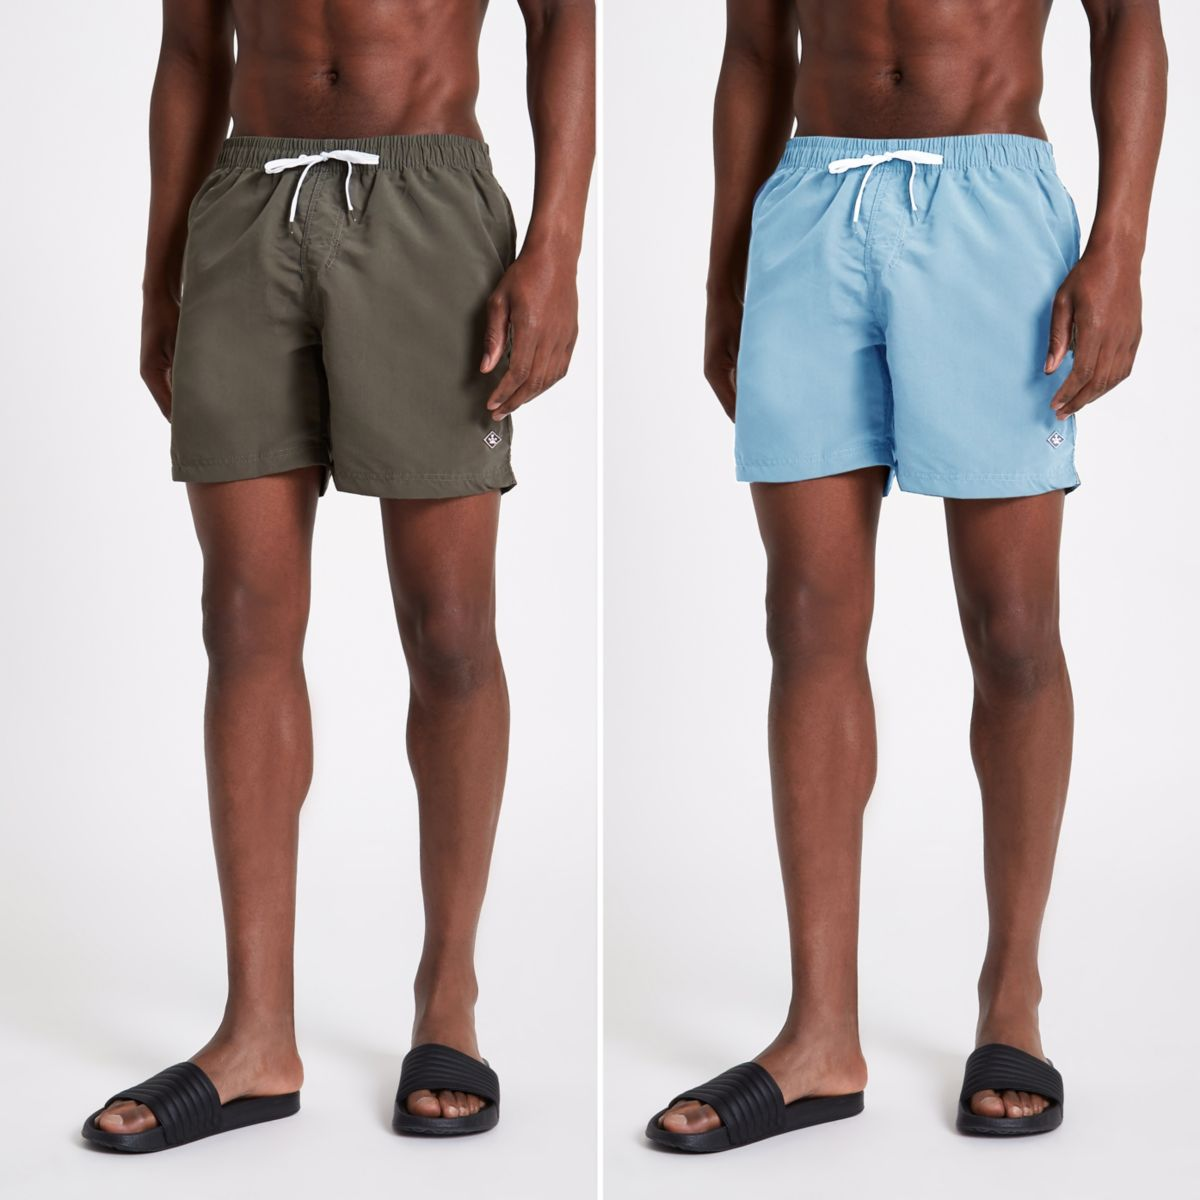 Khaki green and light blue swim shorts pack